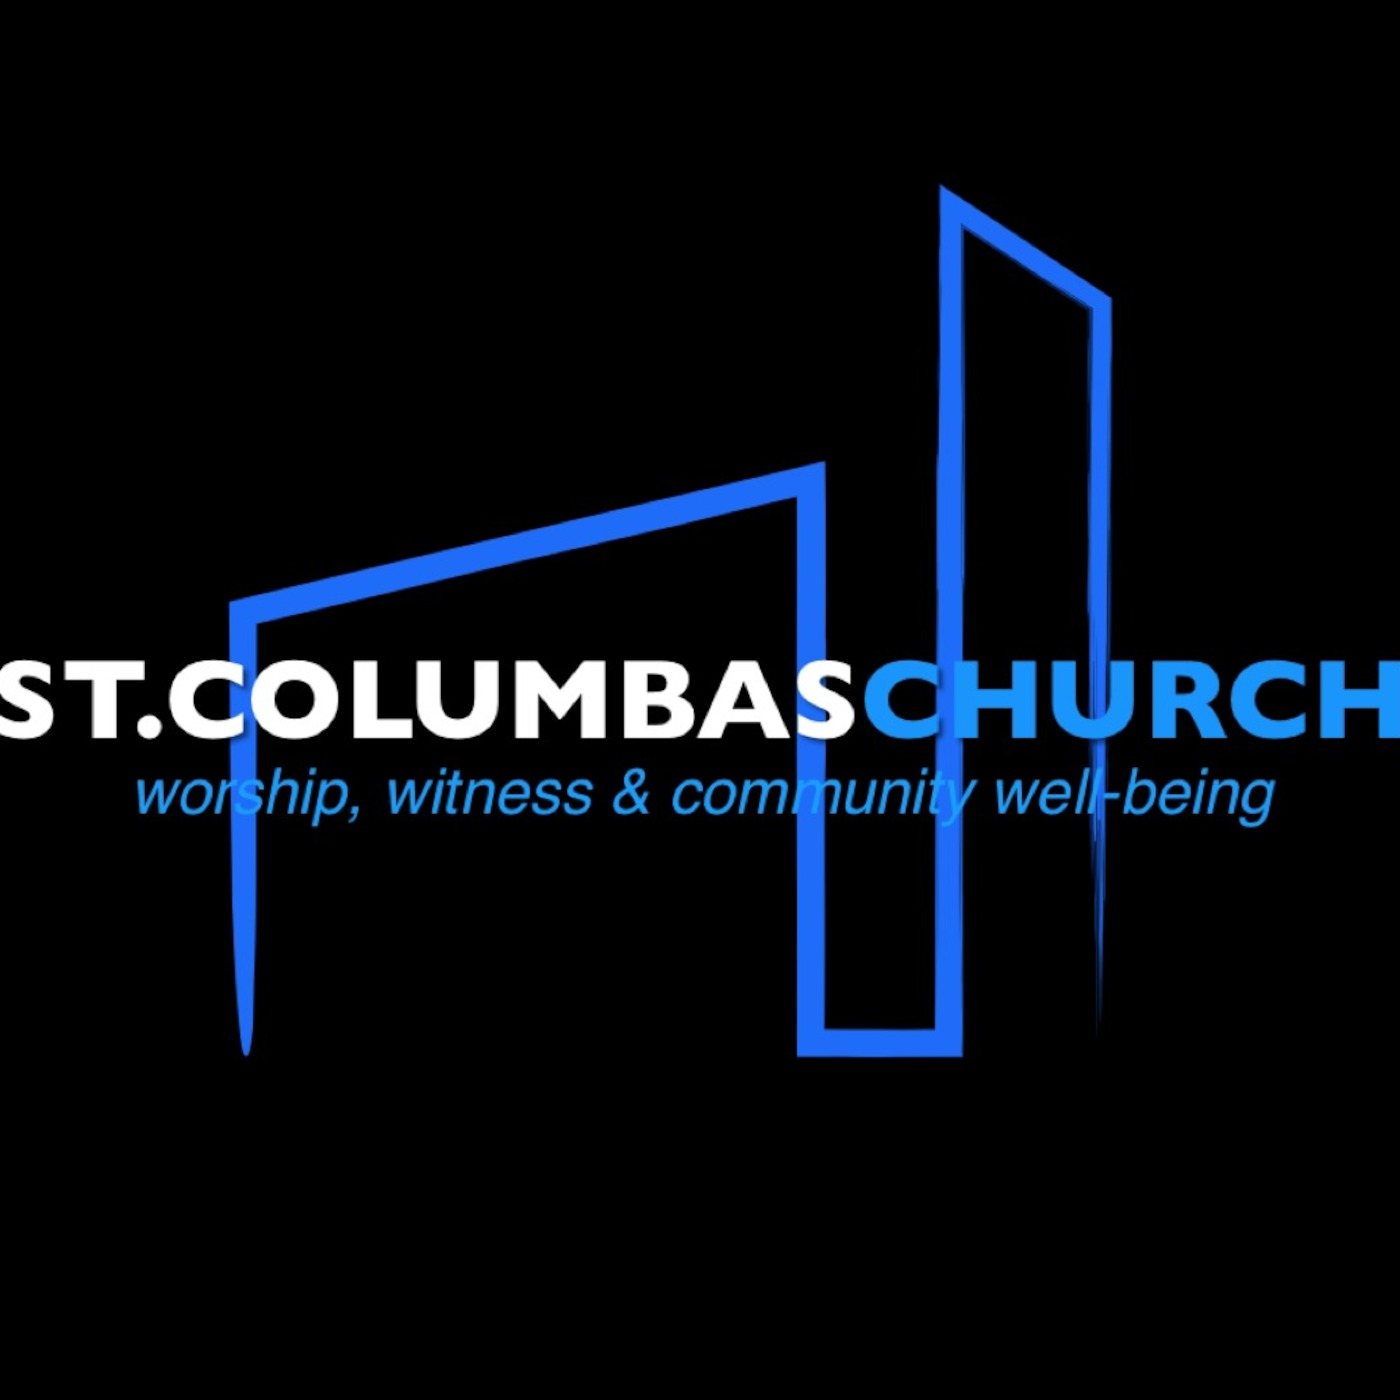 St Columba's Church's Podcast